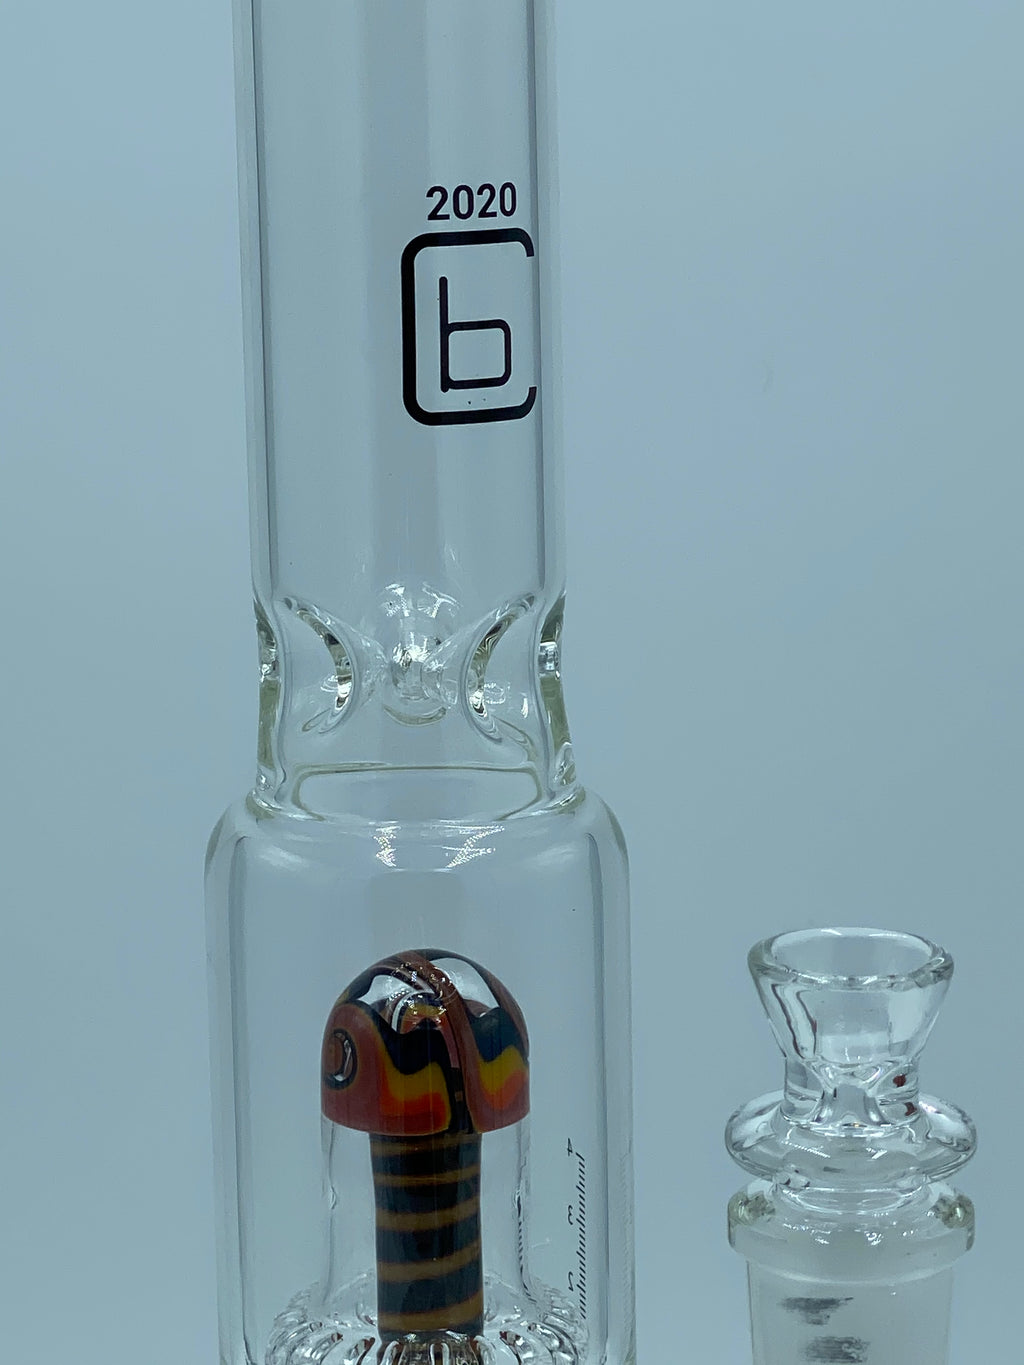 BC 2020 FULL SET TYPE 1 - Smoke Country - Land of the artistic glass blown bongs